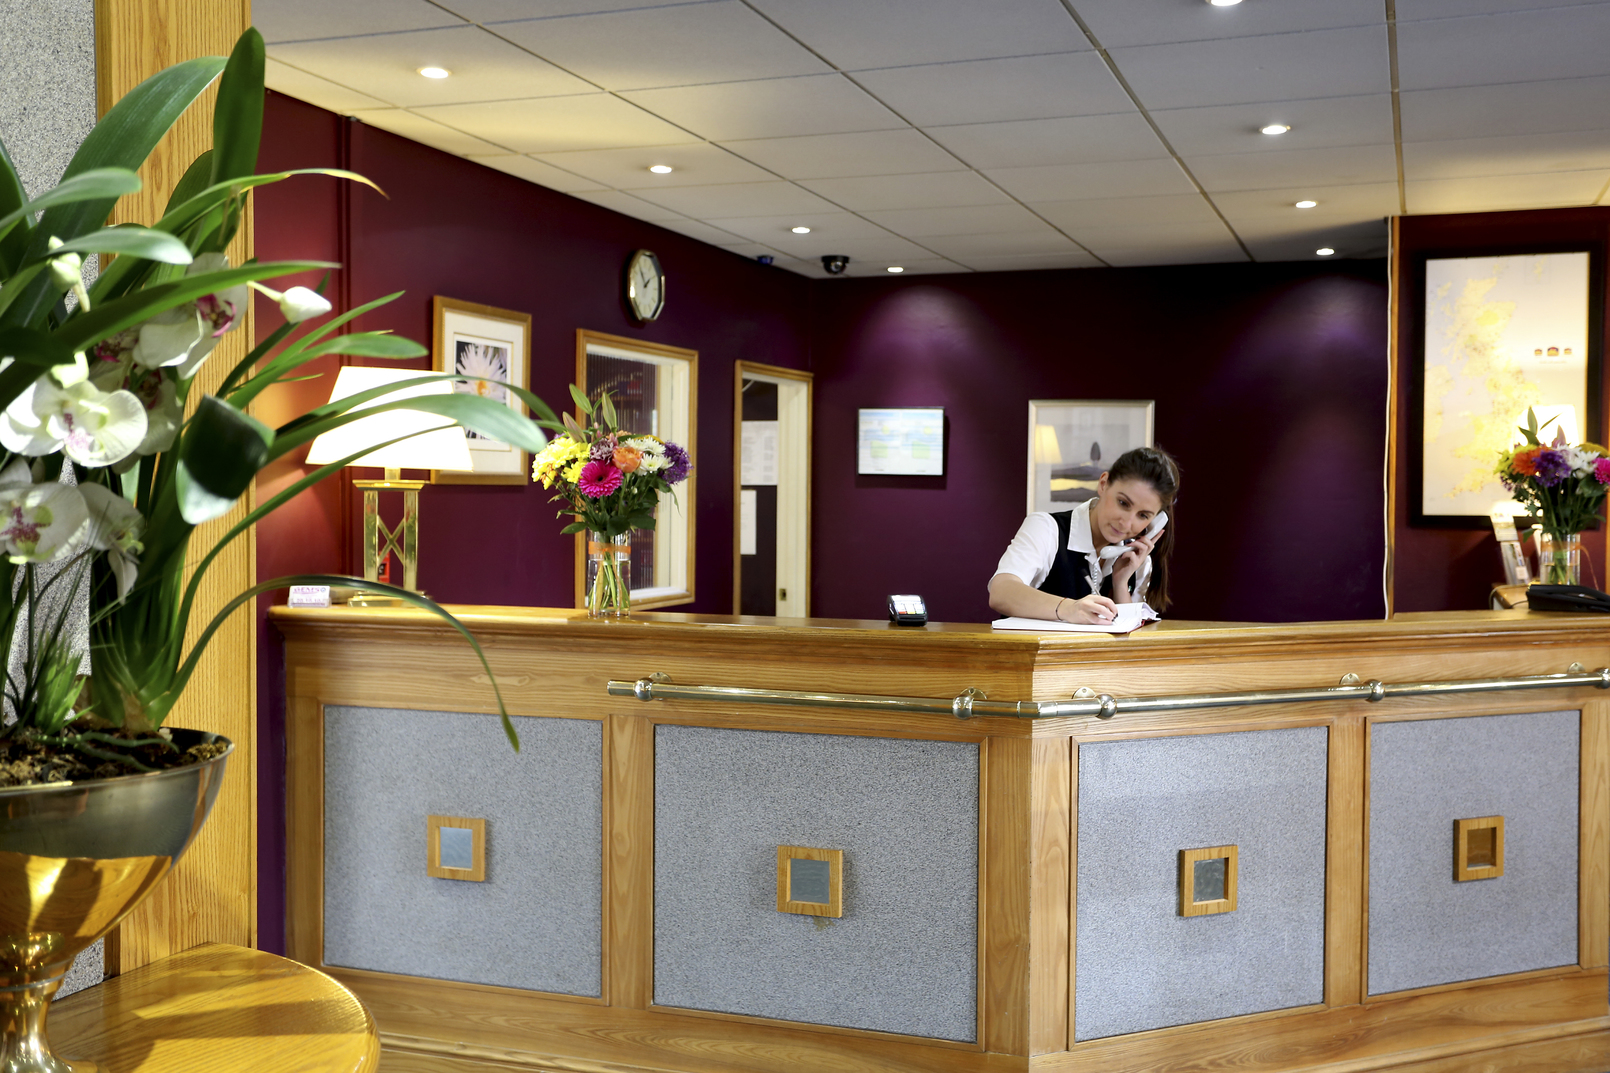 Best western passage house hotel for Home passage designs